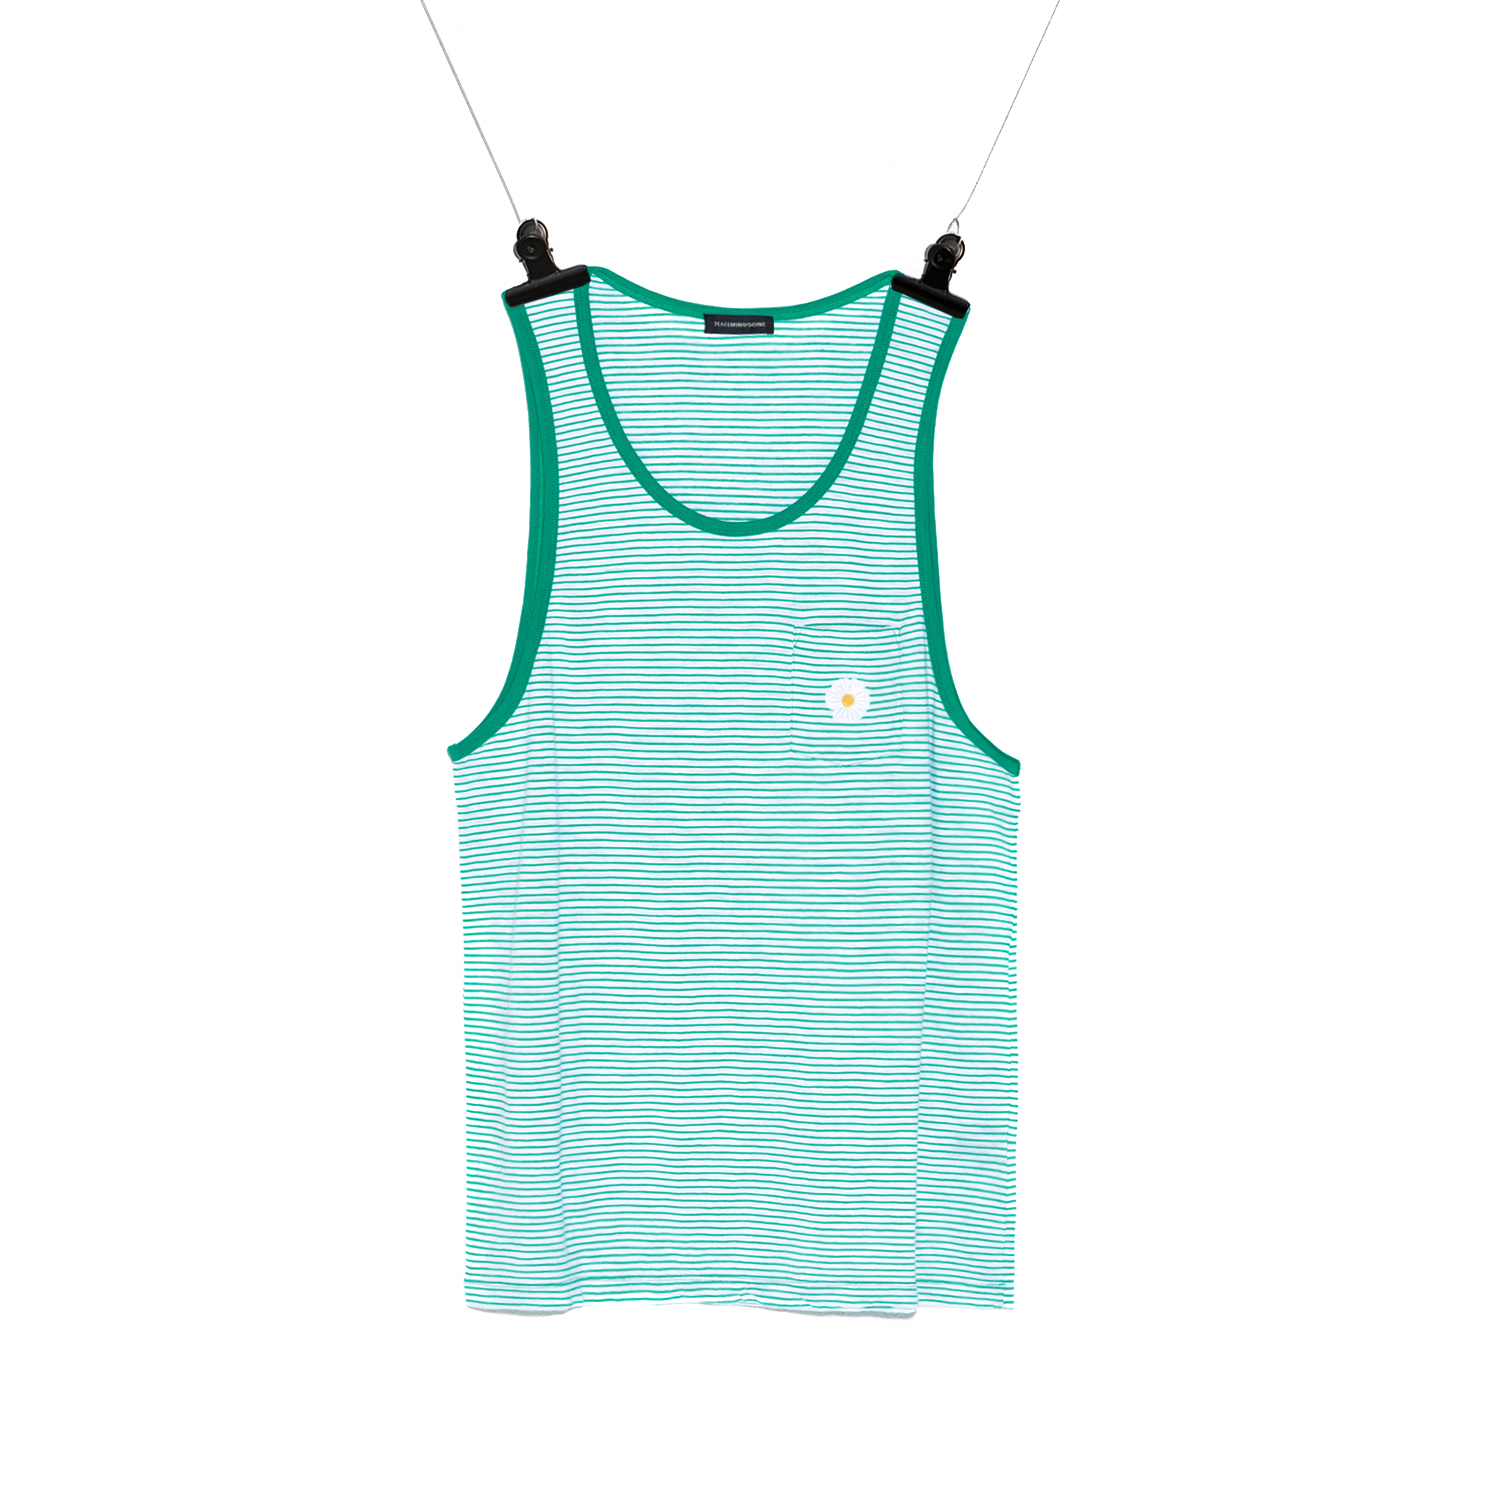 PMO TANK TOP #1 GREEN